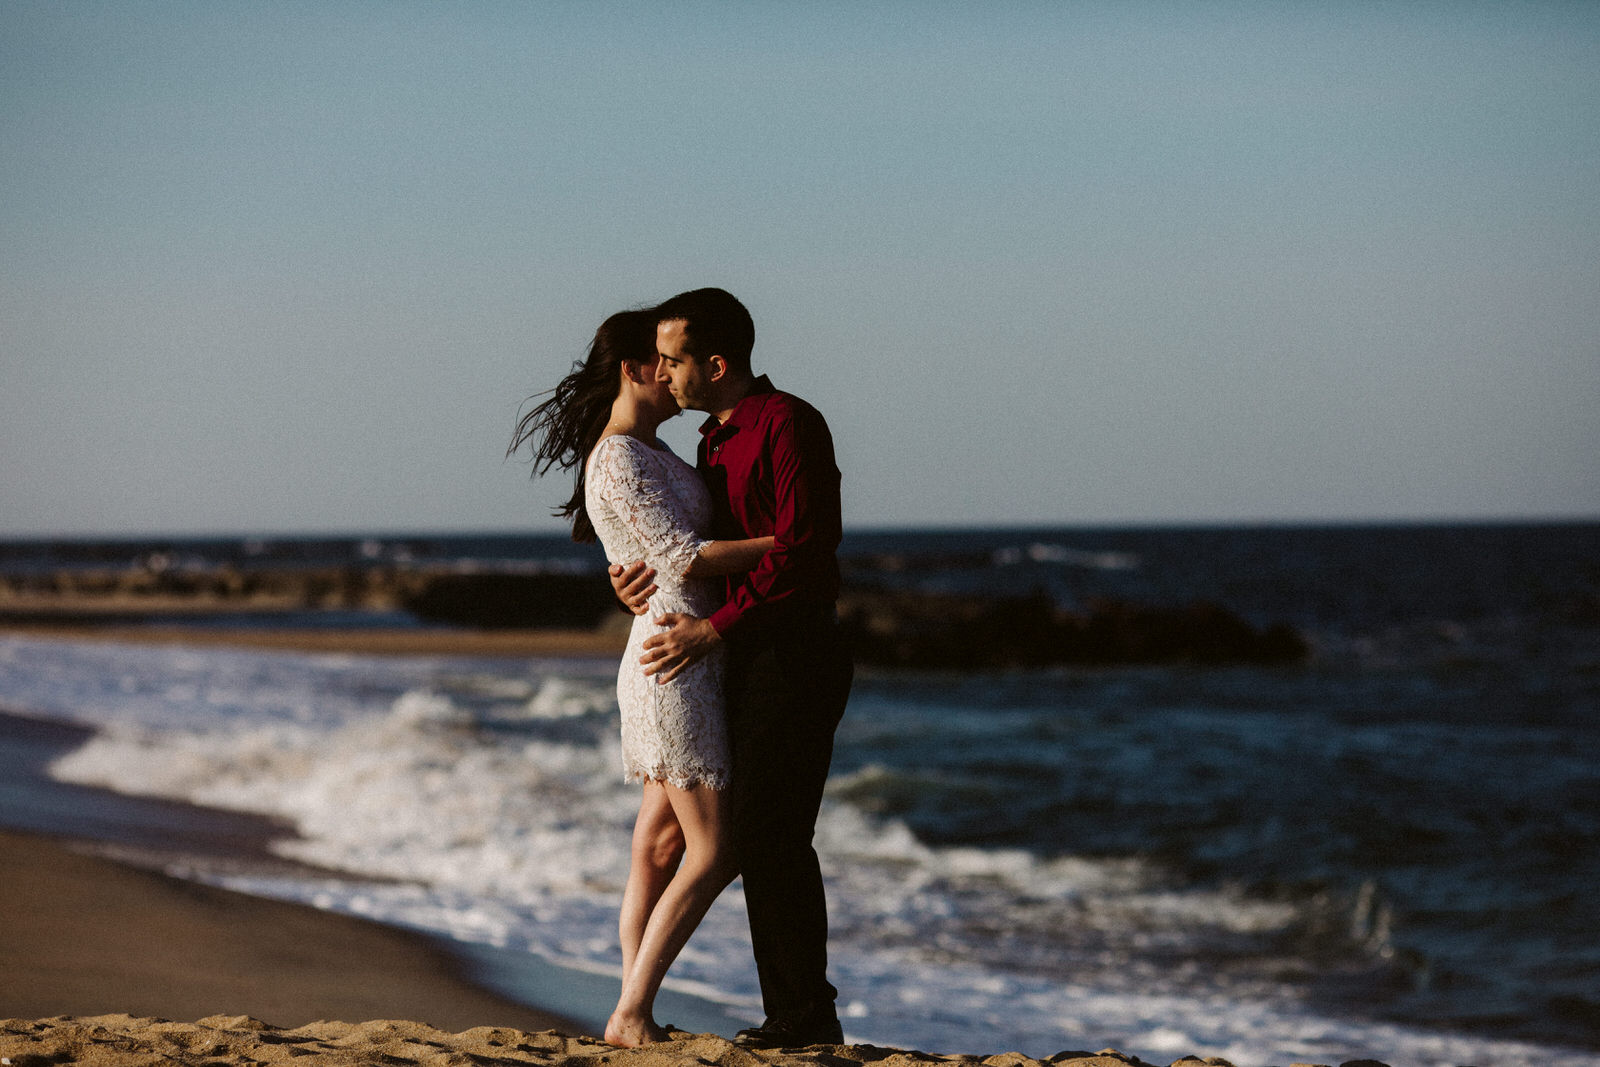 sunset-engagement-portraits-jersey-shore-asbury-park-tiny-house-photo-wedding-photographer-romantic-ocean-beachjpg